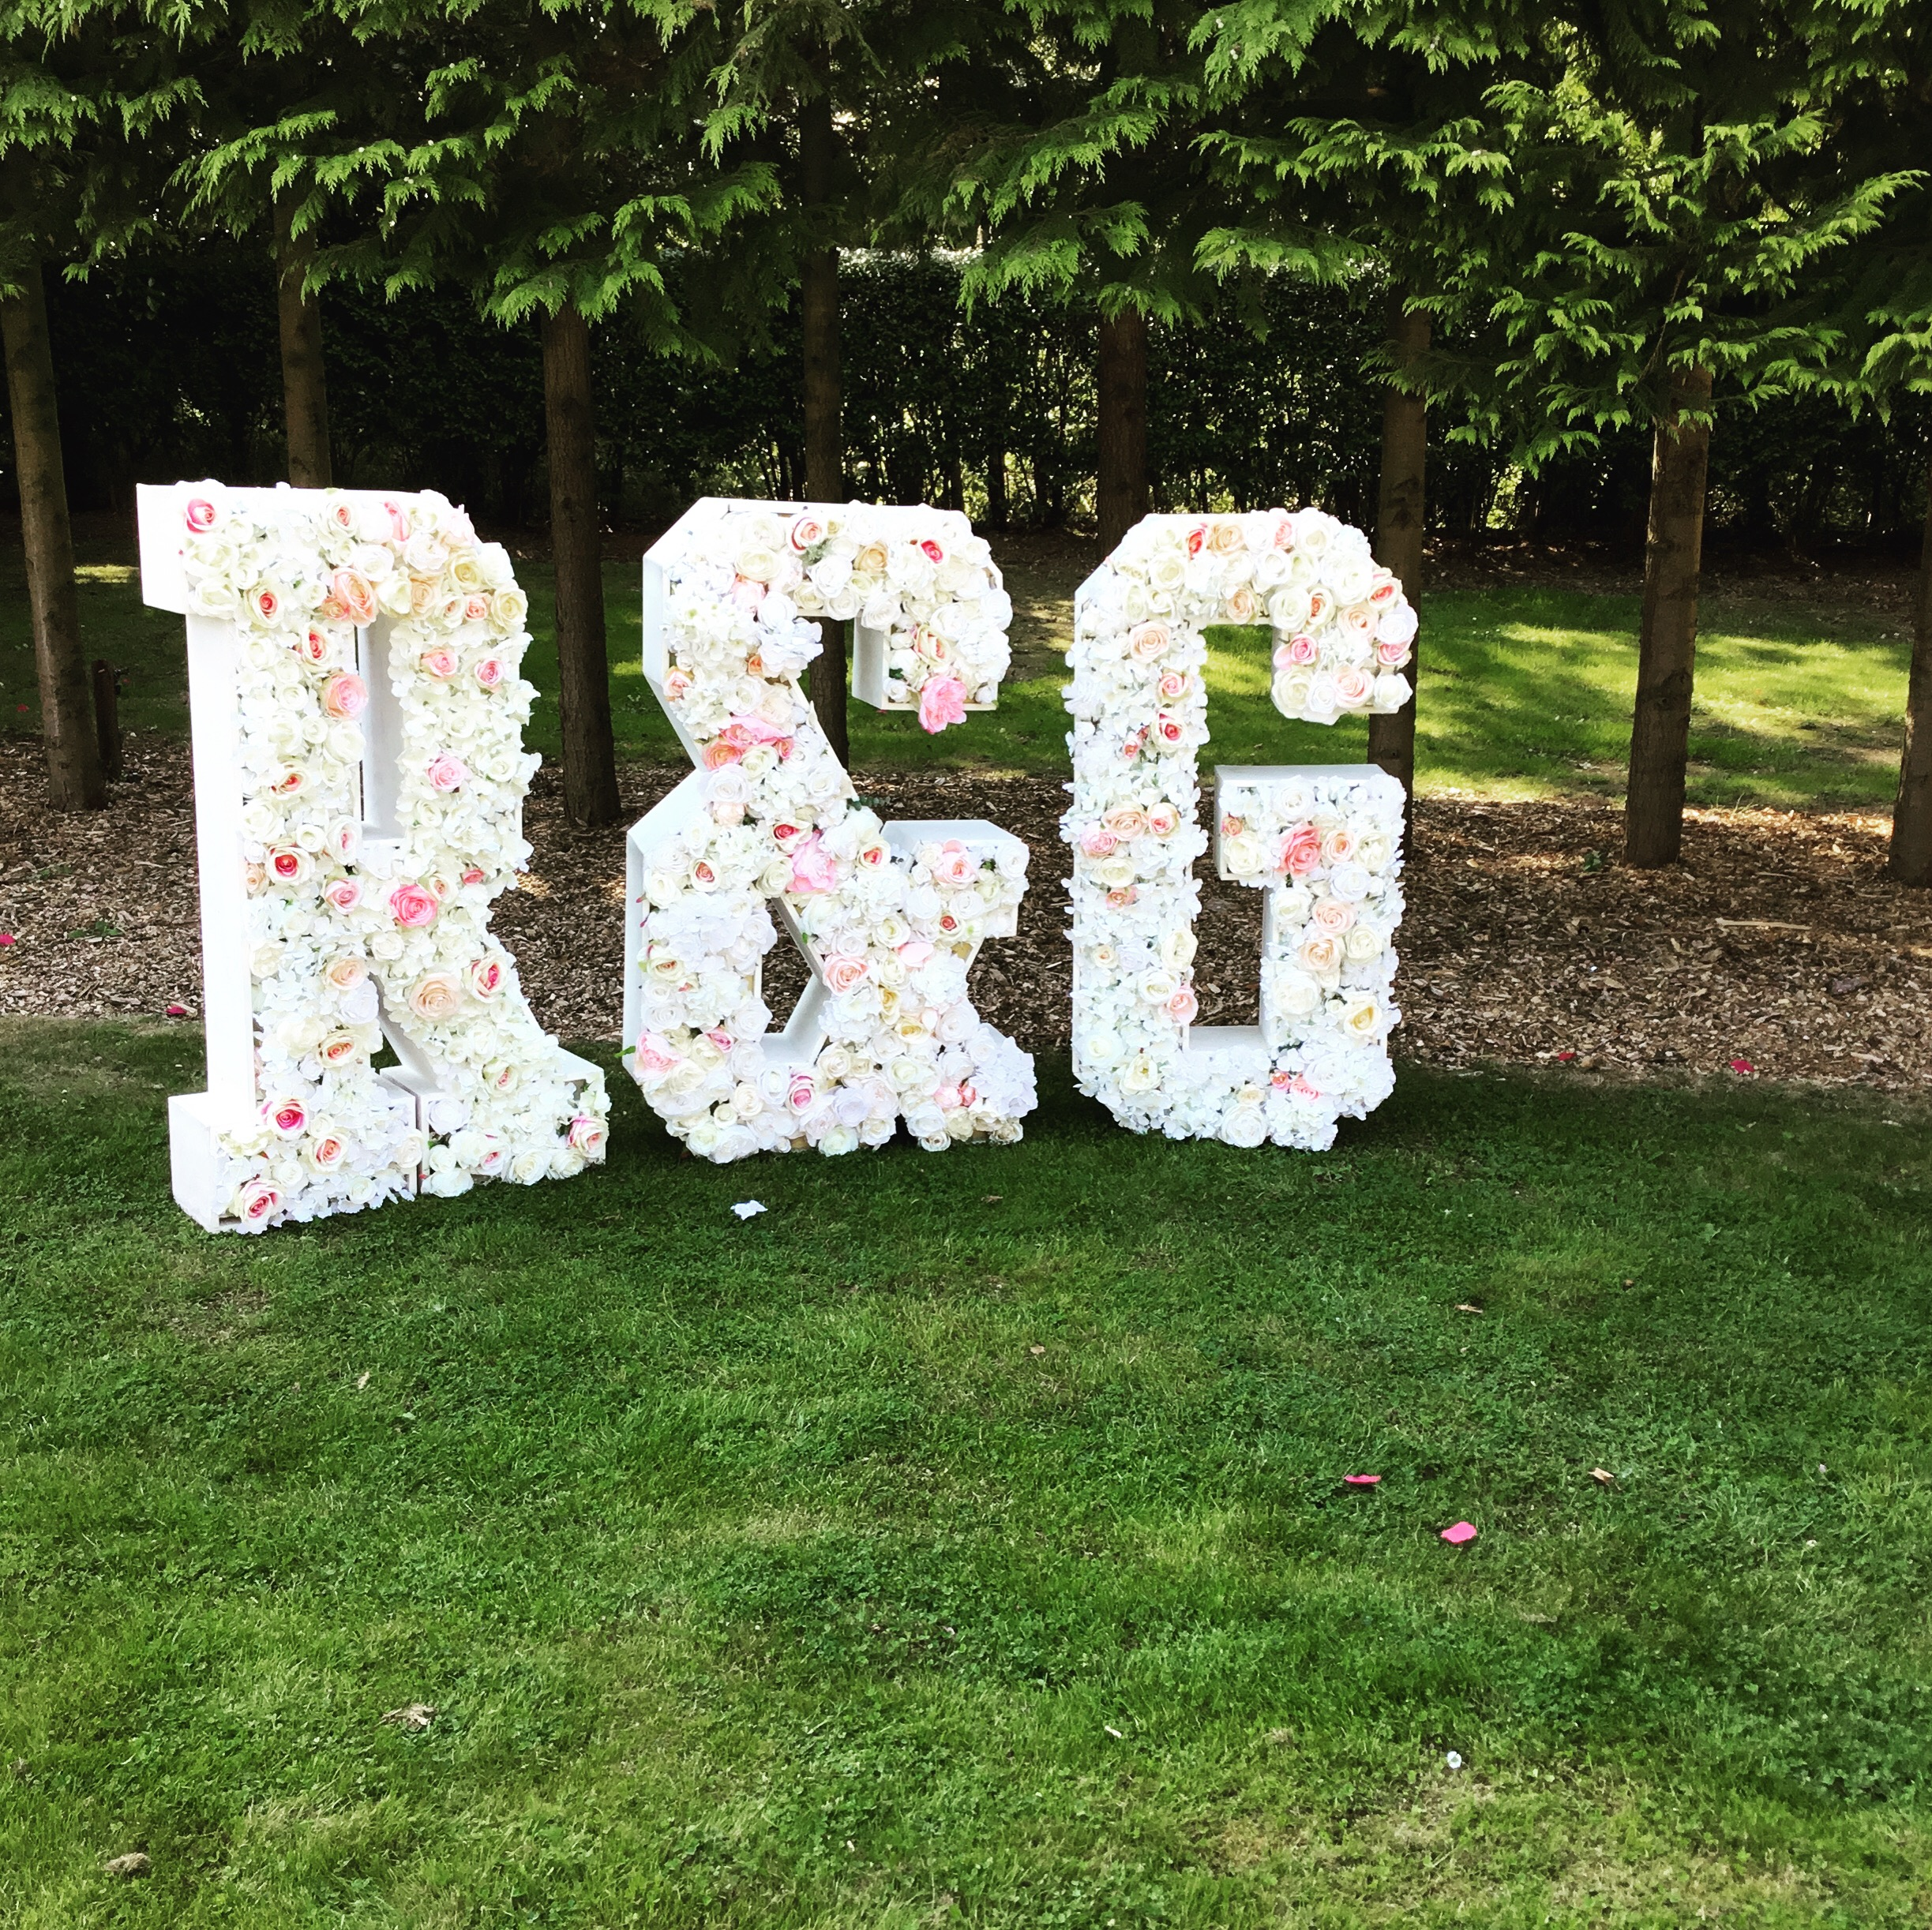 Floral Letters R&G in flowers